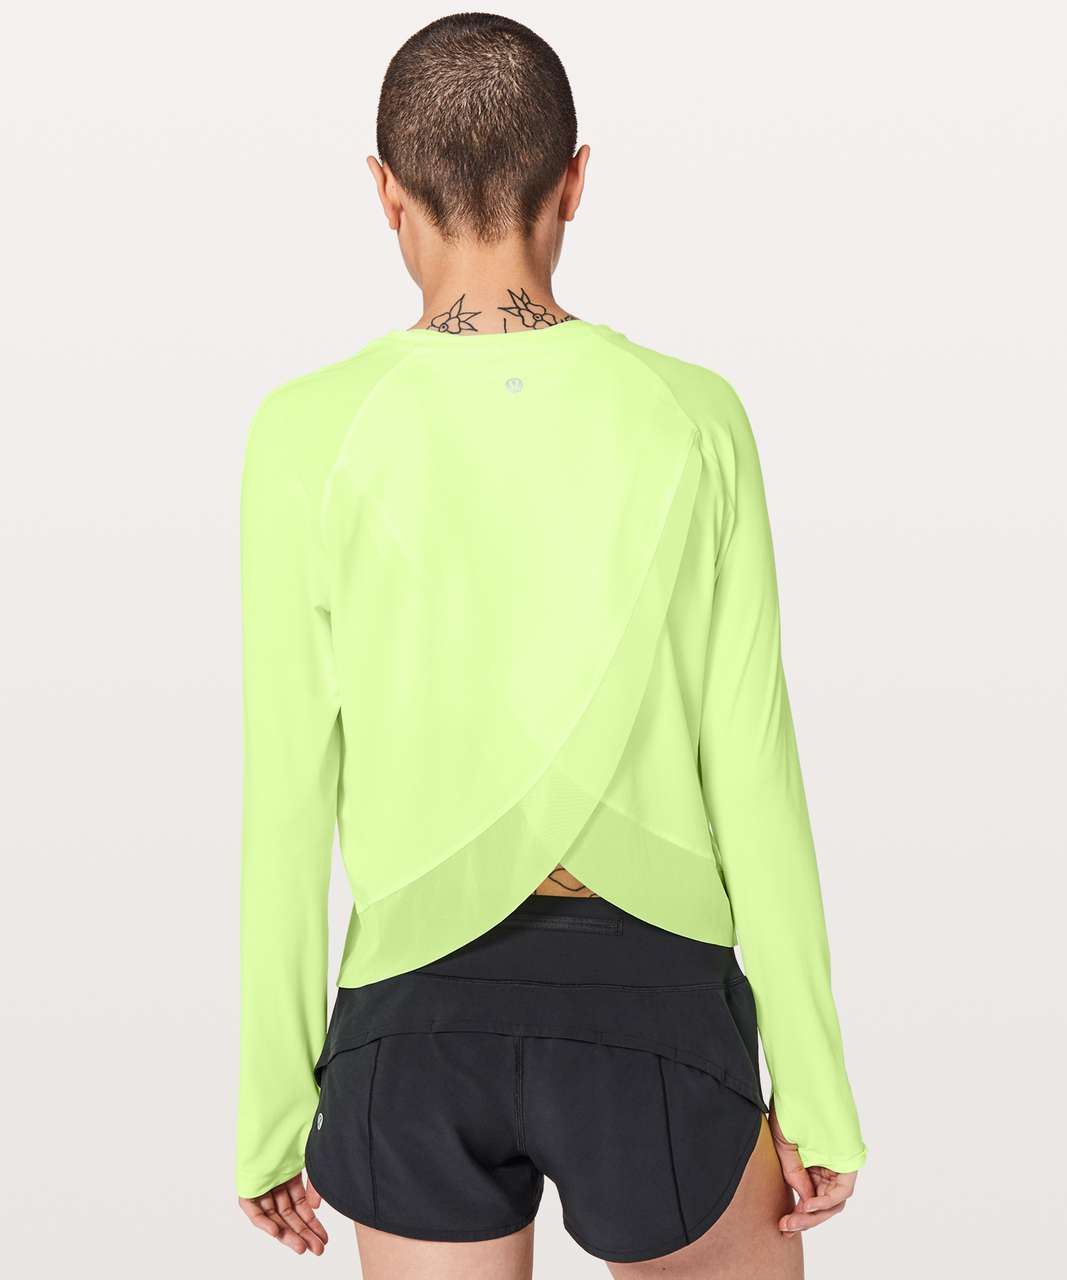 Lululemon Quick Pace Long Sleeve - Clear Mint